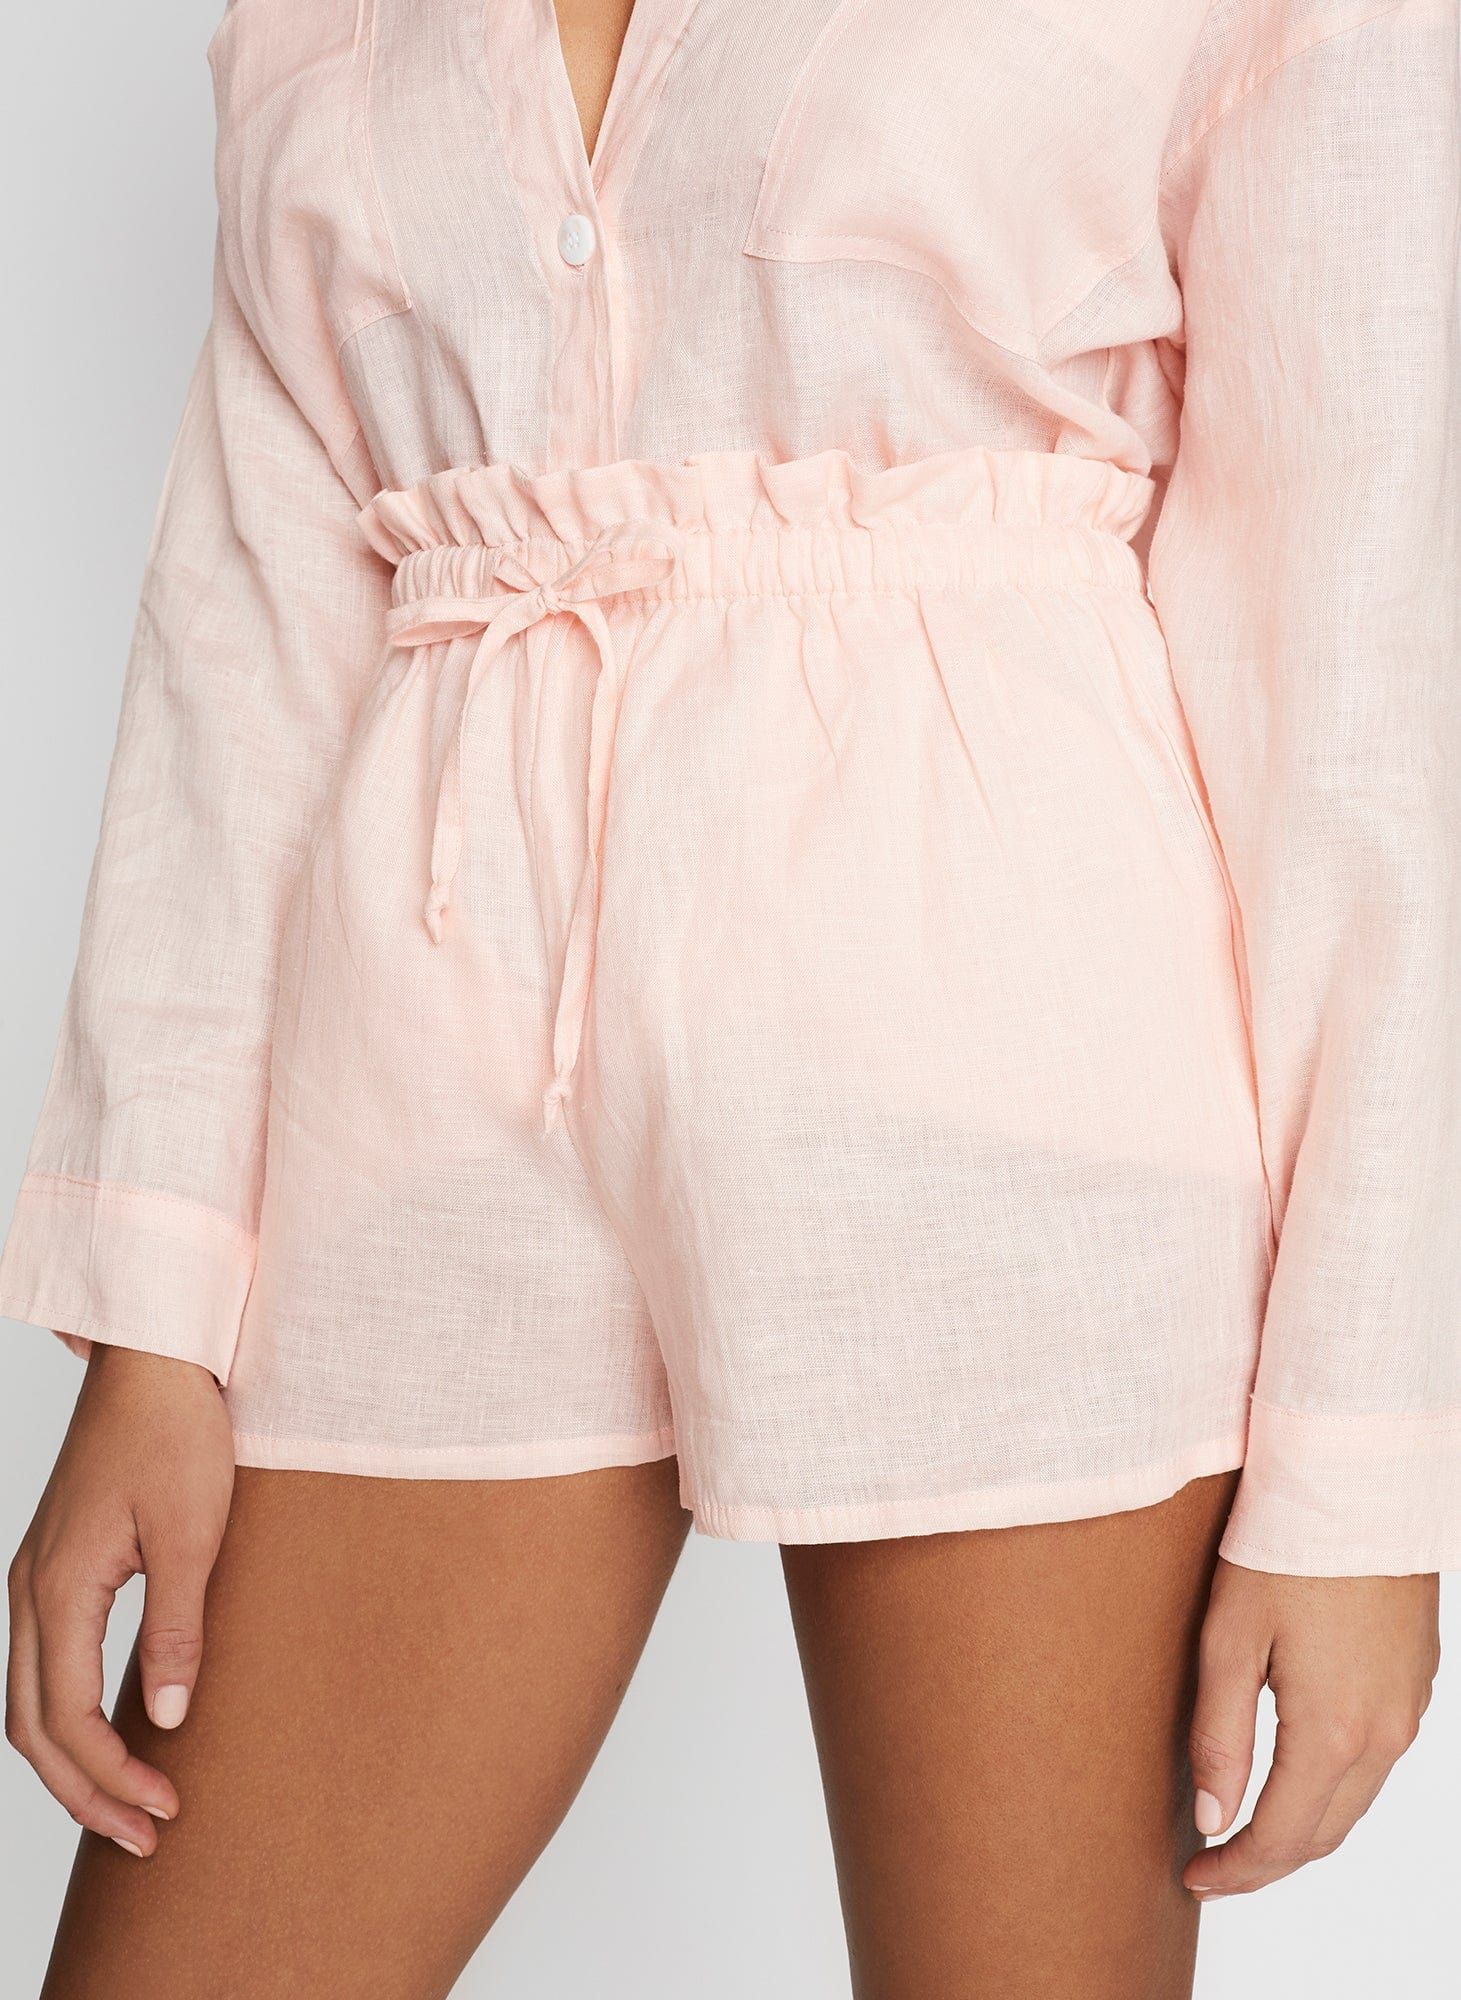 PLAIN PALE PINK - ANJA SHORTS